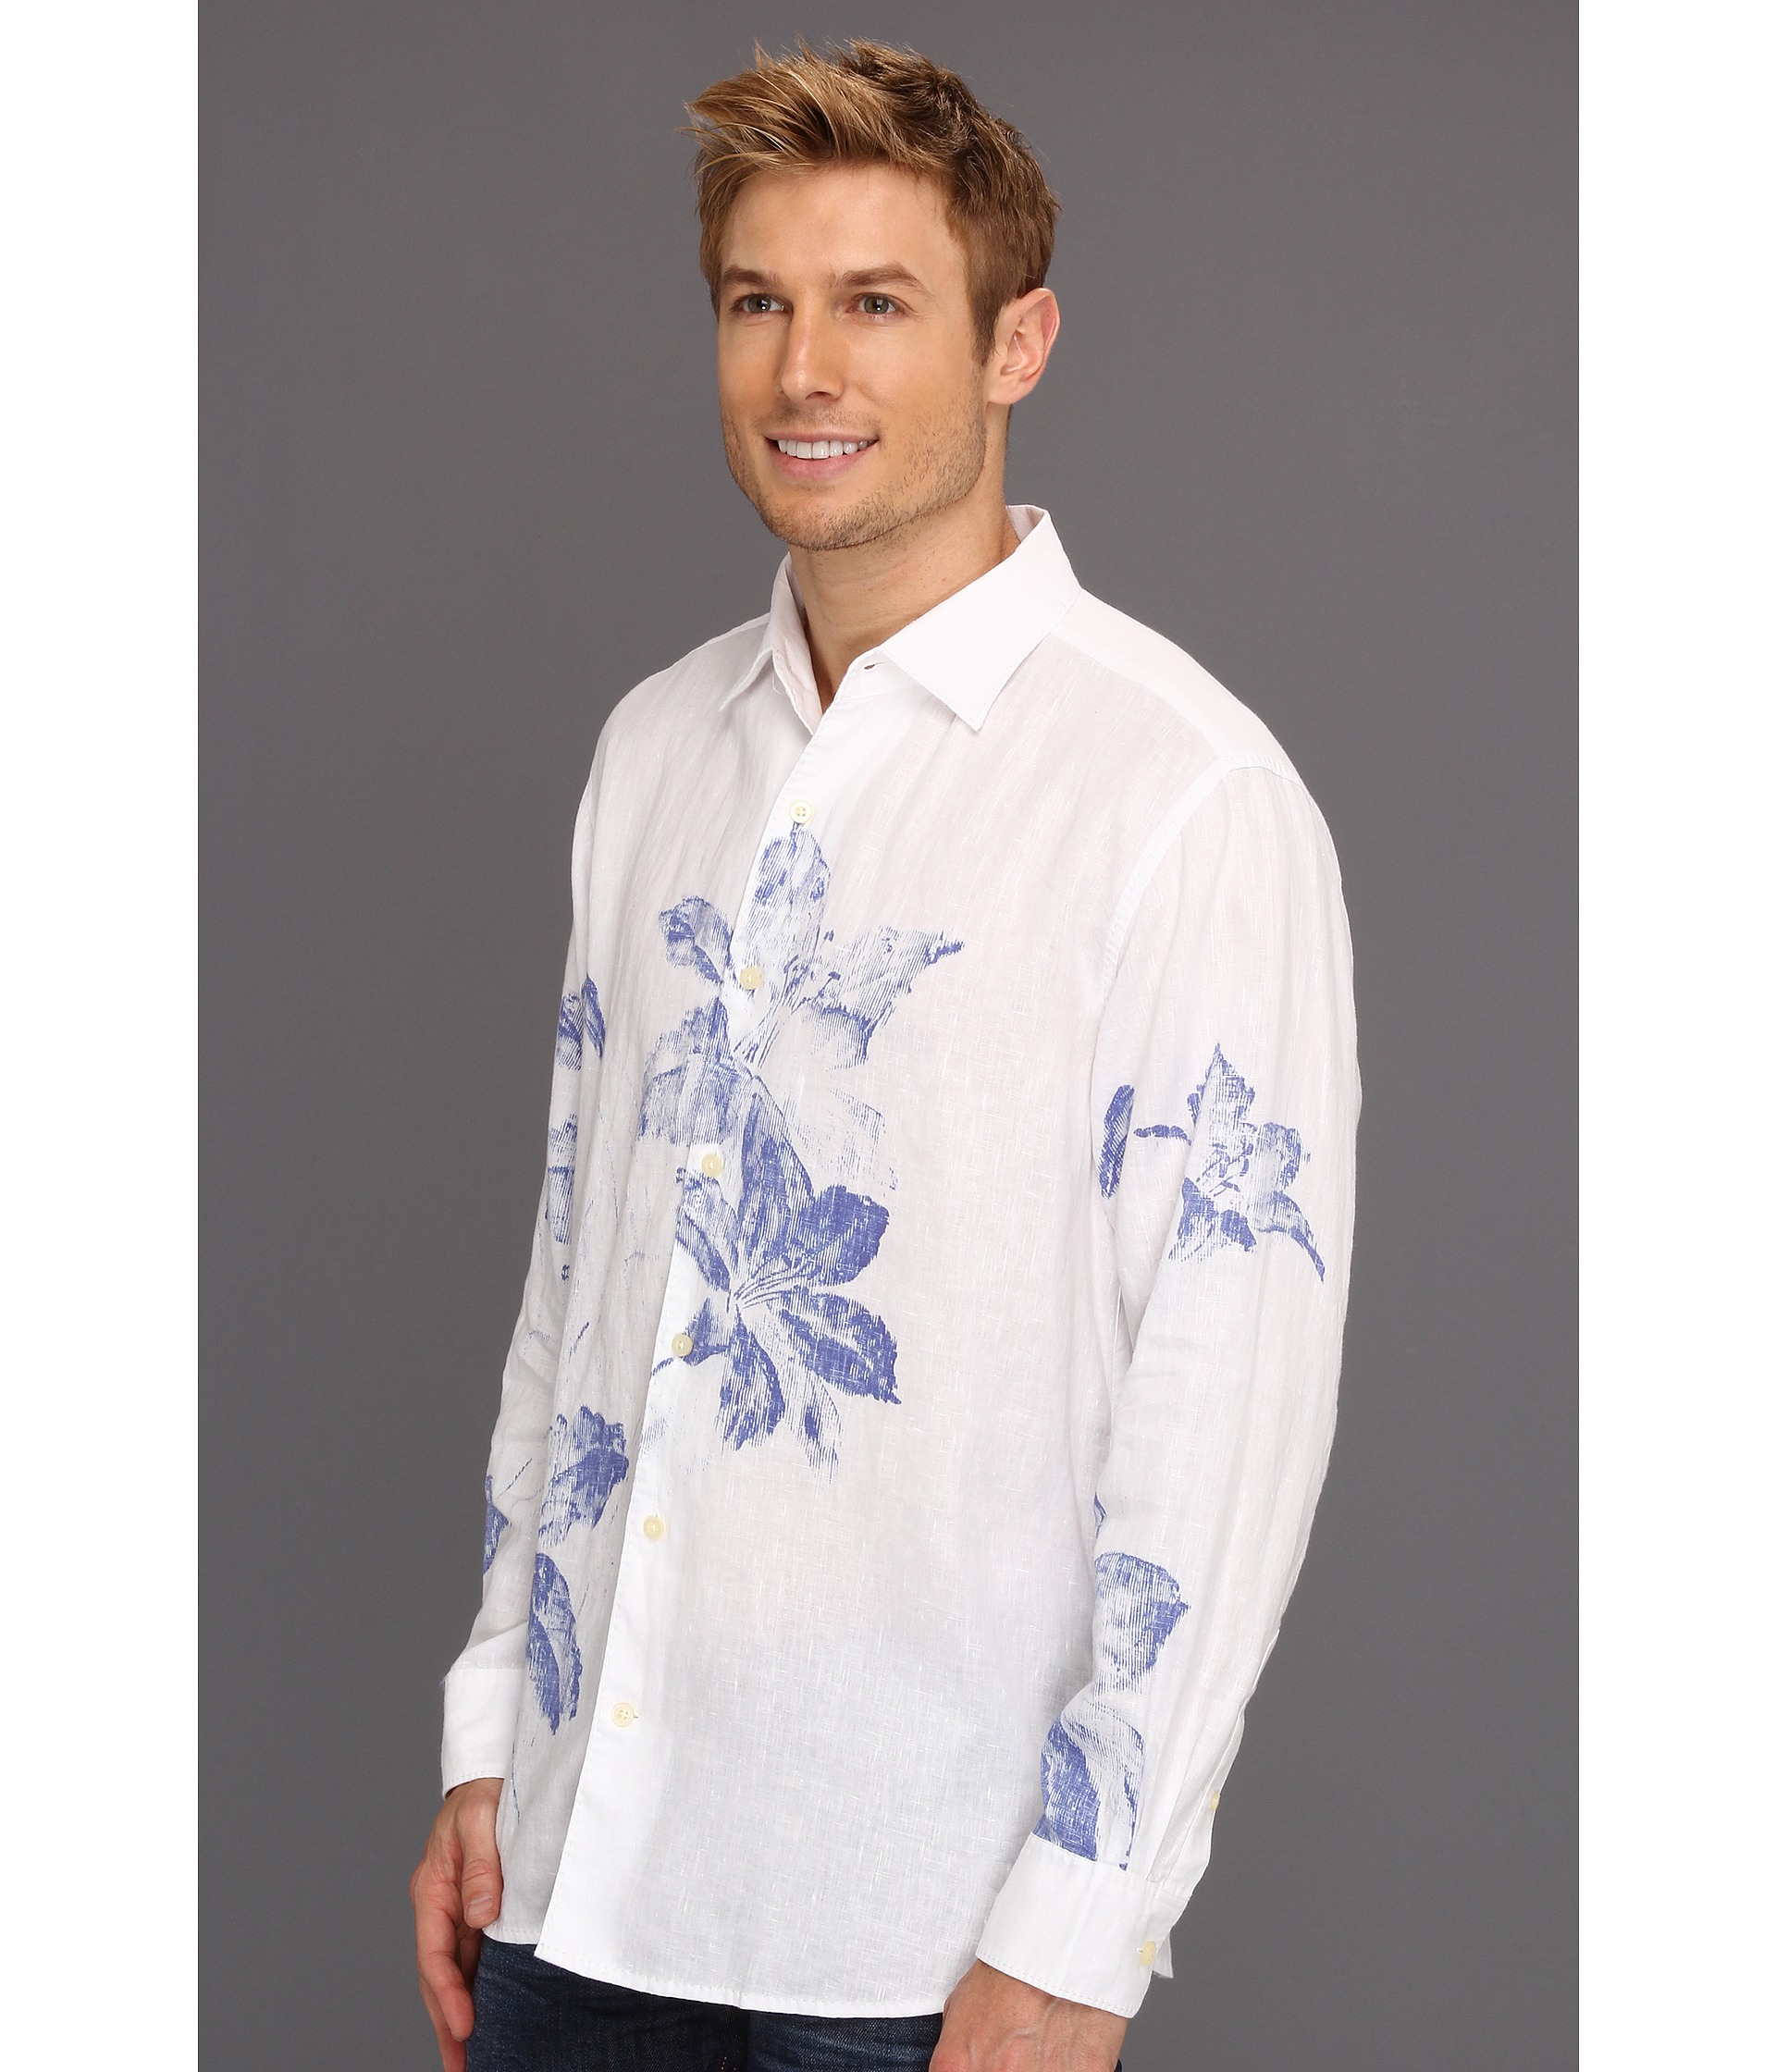 Tommy bahama artafloral ls shirt in white for men lyst for Tommy bahama christmas shirt 2014